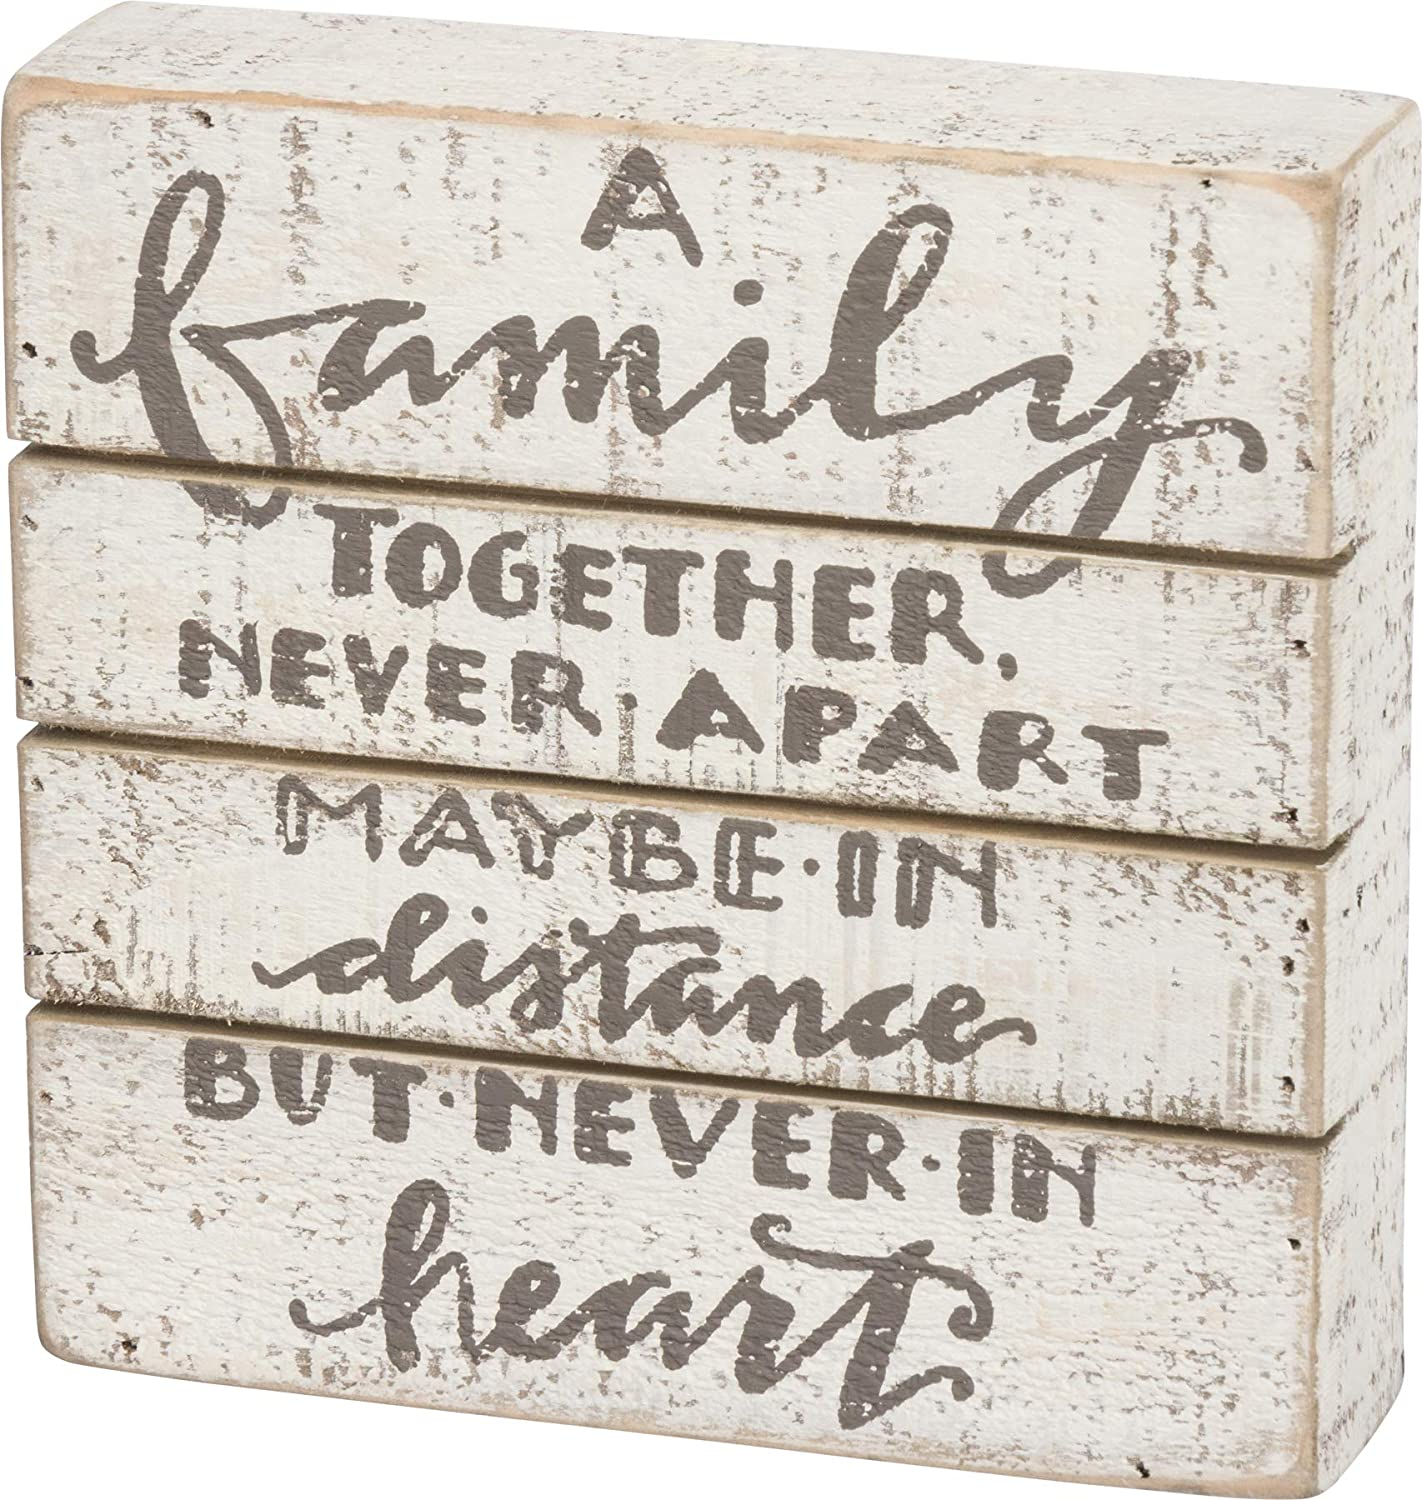 Primitives by Kathy 34361 Hand Lettered Slat Wood Box Sign, 7 x 7-Inches, A Family Together Never Apart